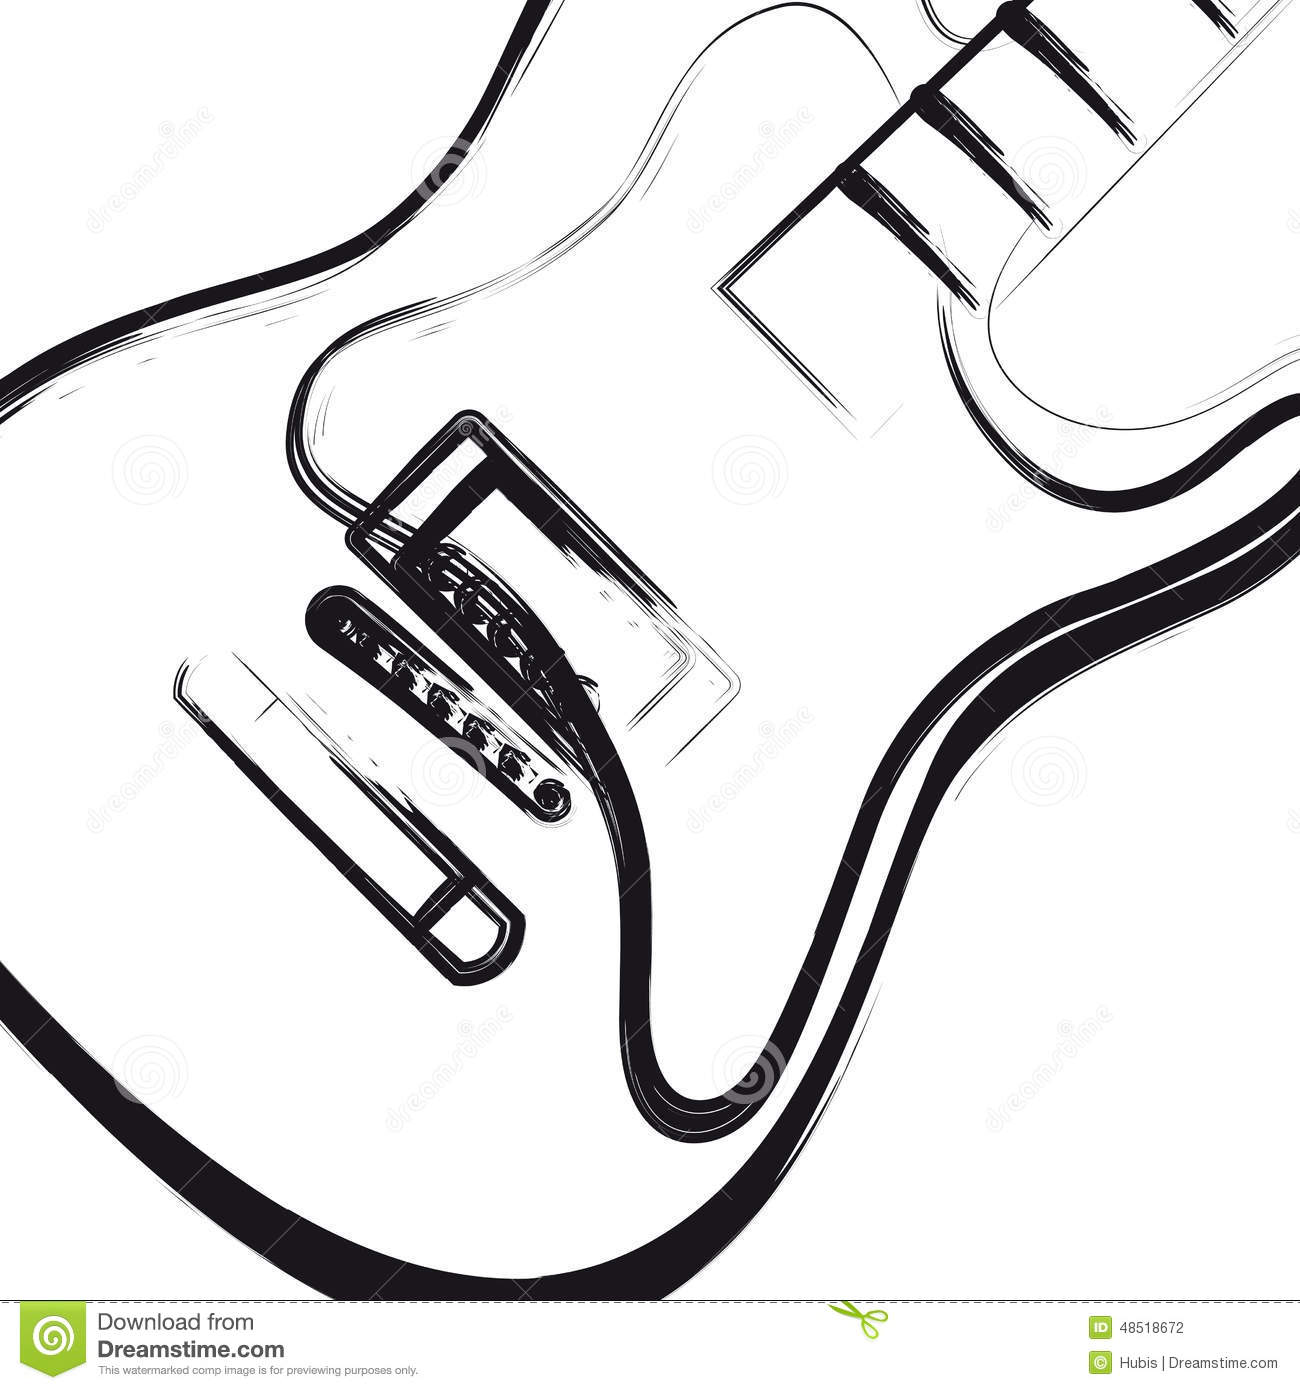 Electric Guitar Hand Drawn Stock Vector Image Of Blot